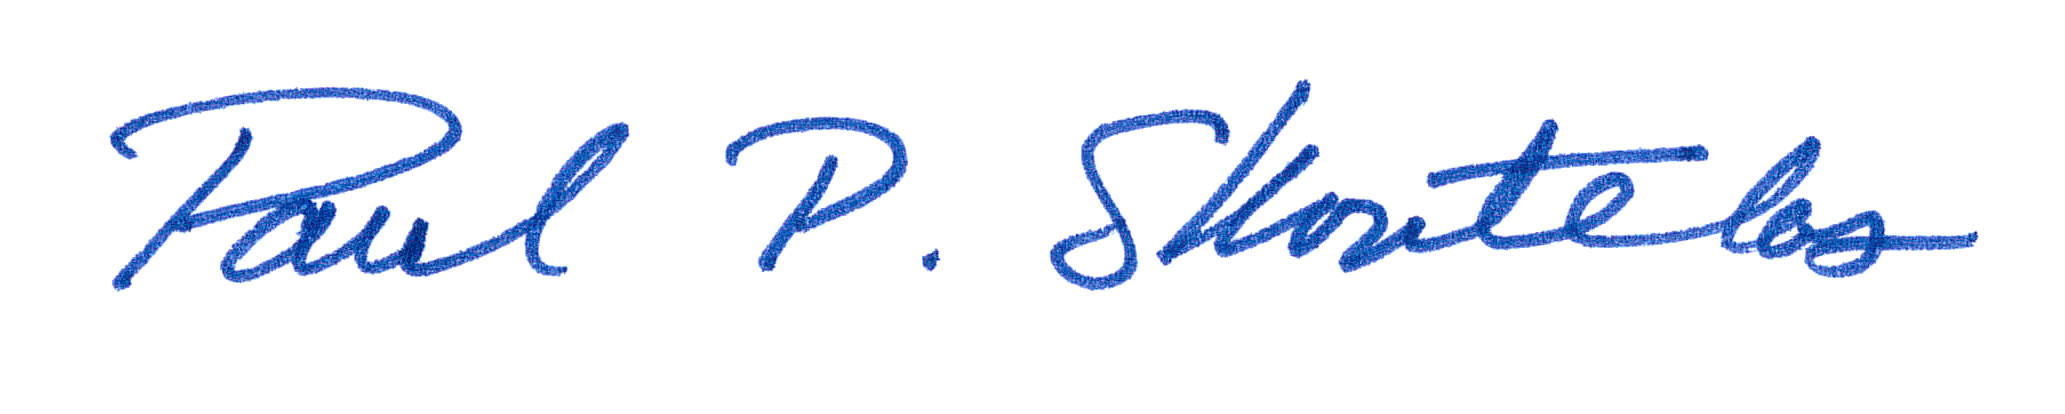 paul skoutelas signature_blue_full name_01-2018.jpg